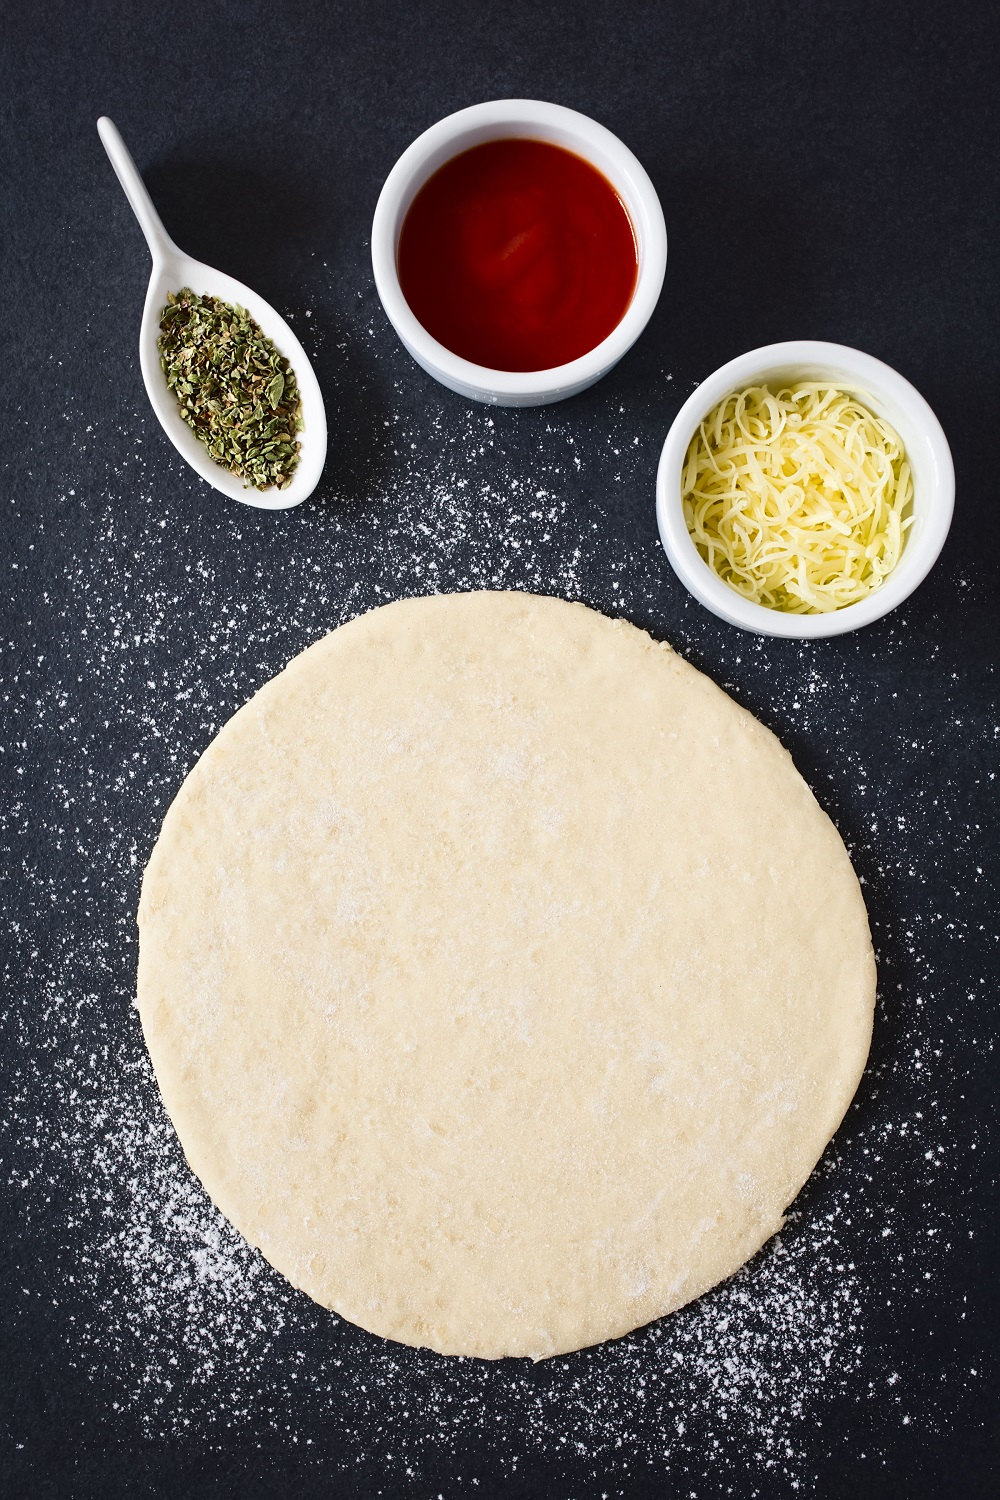 Pizza Dough after Proofing